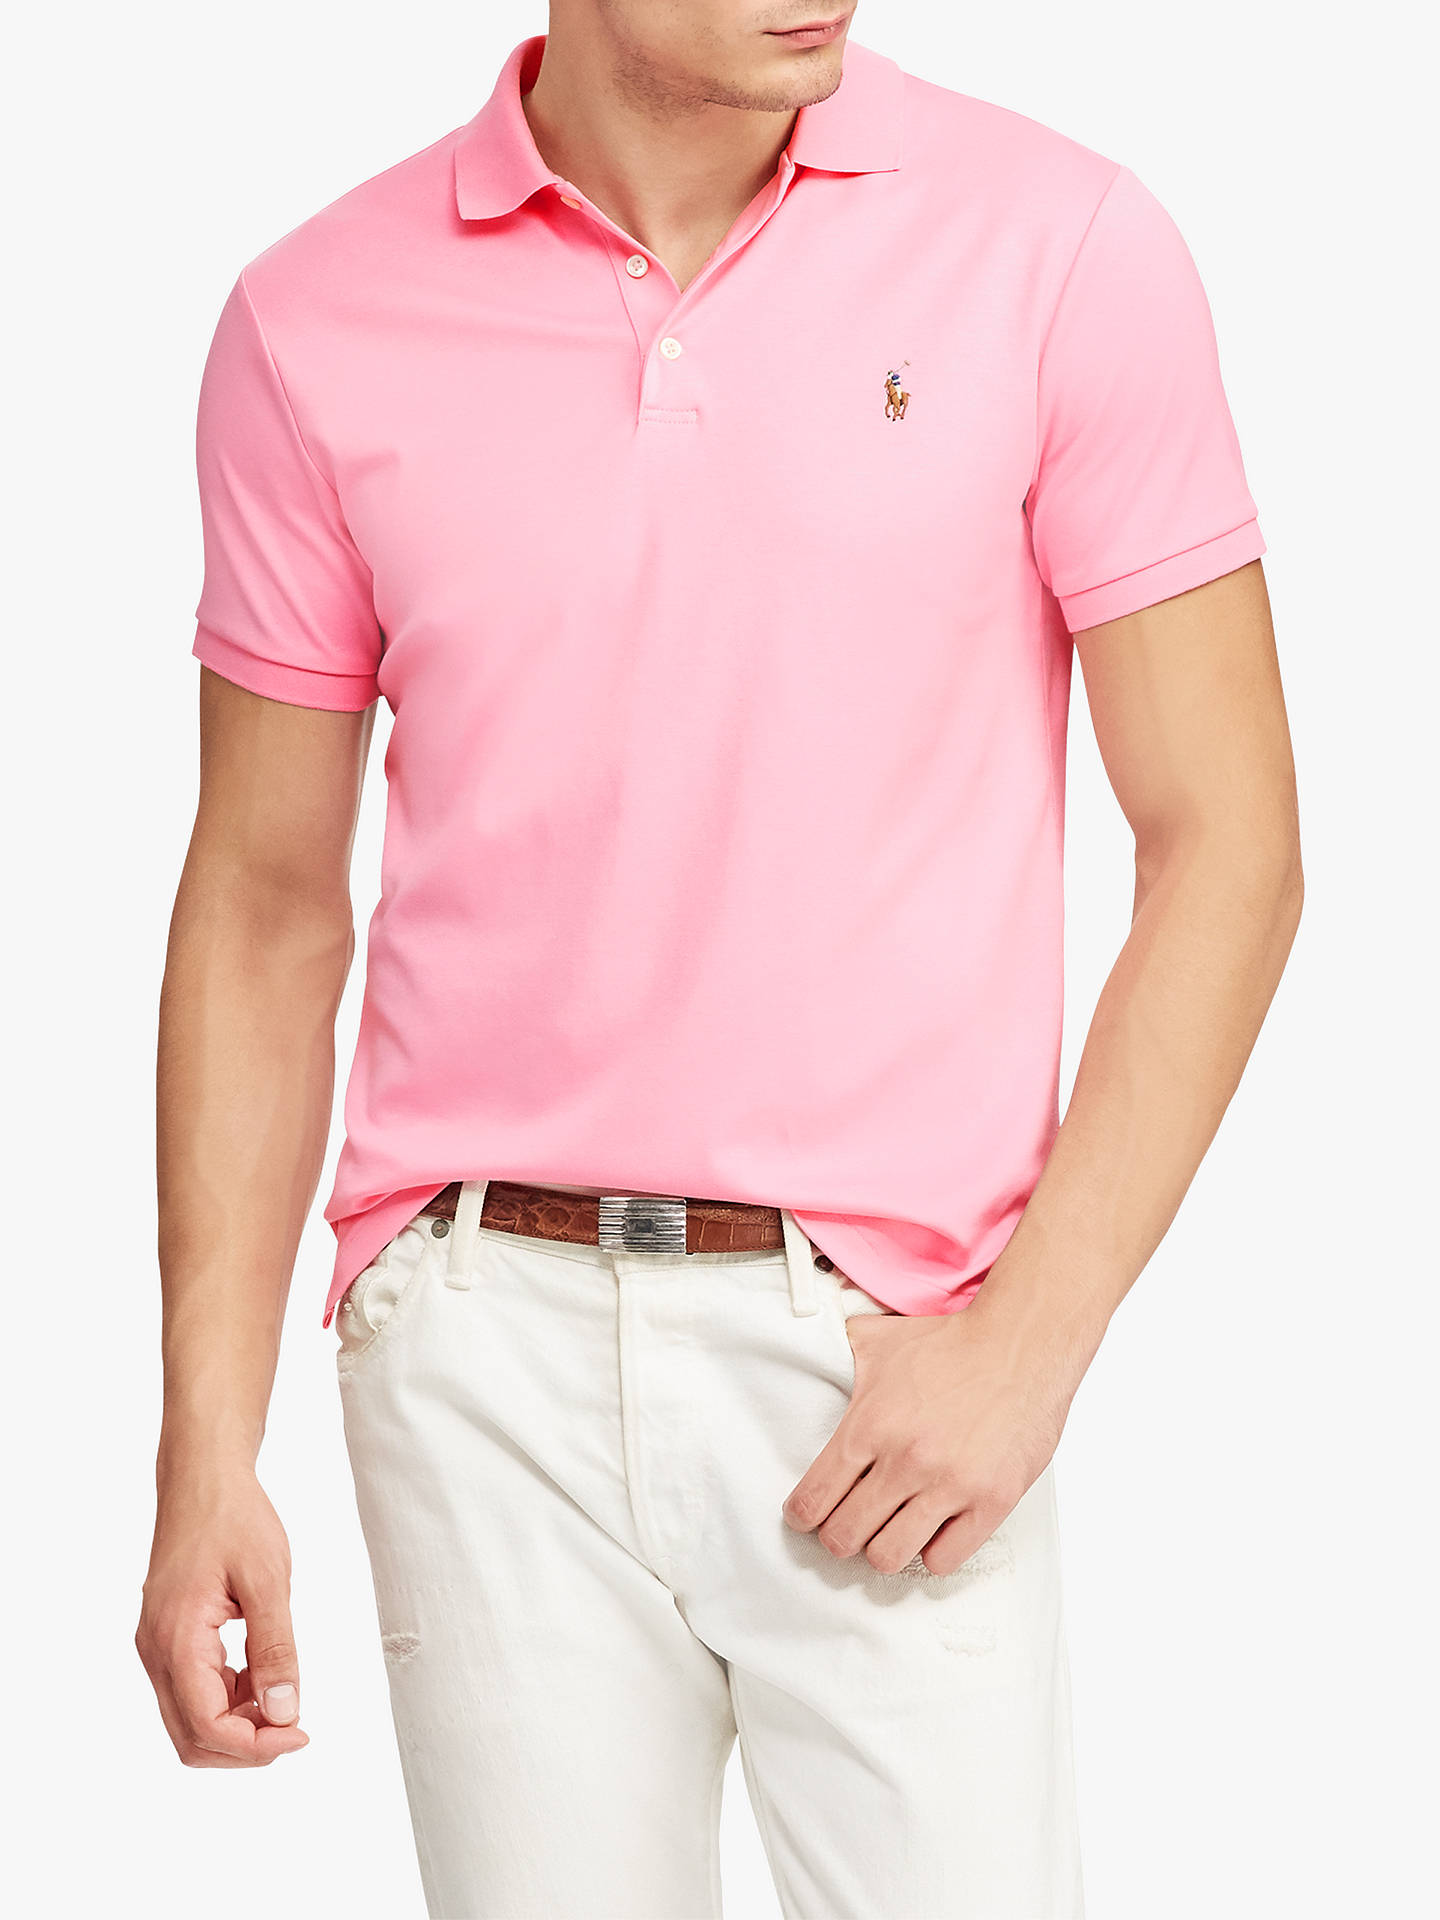 92fdbdce Buy Polo Ralph Lauren Polo Shirt, Harbor Pink, S Online at johnlewis.com ...